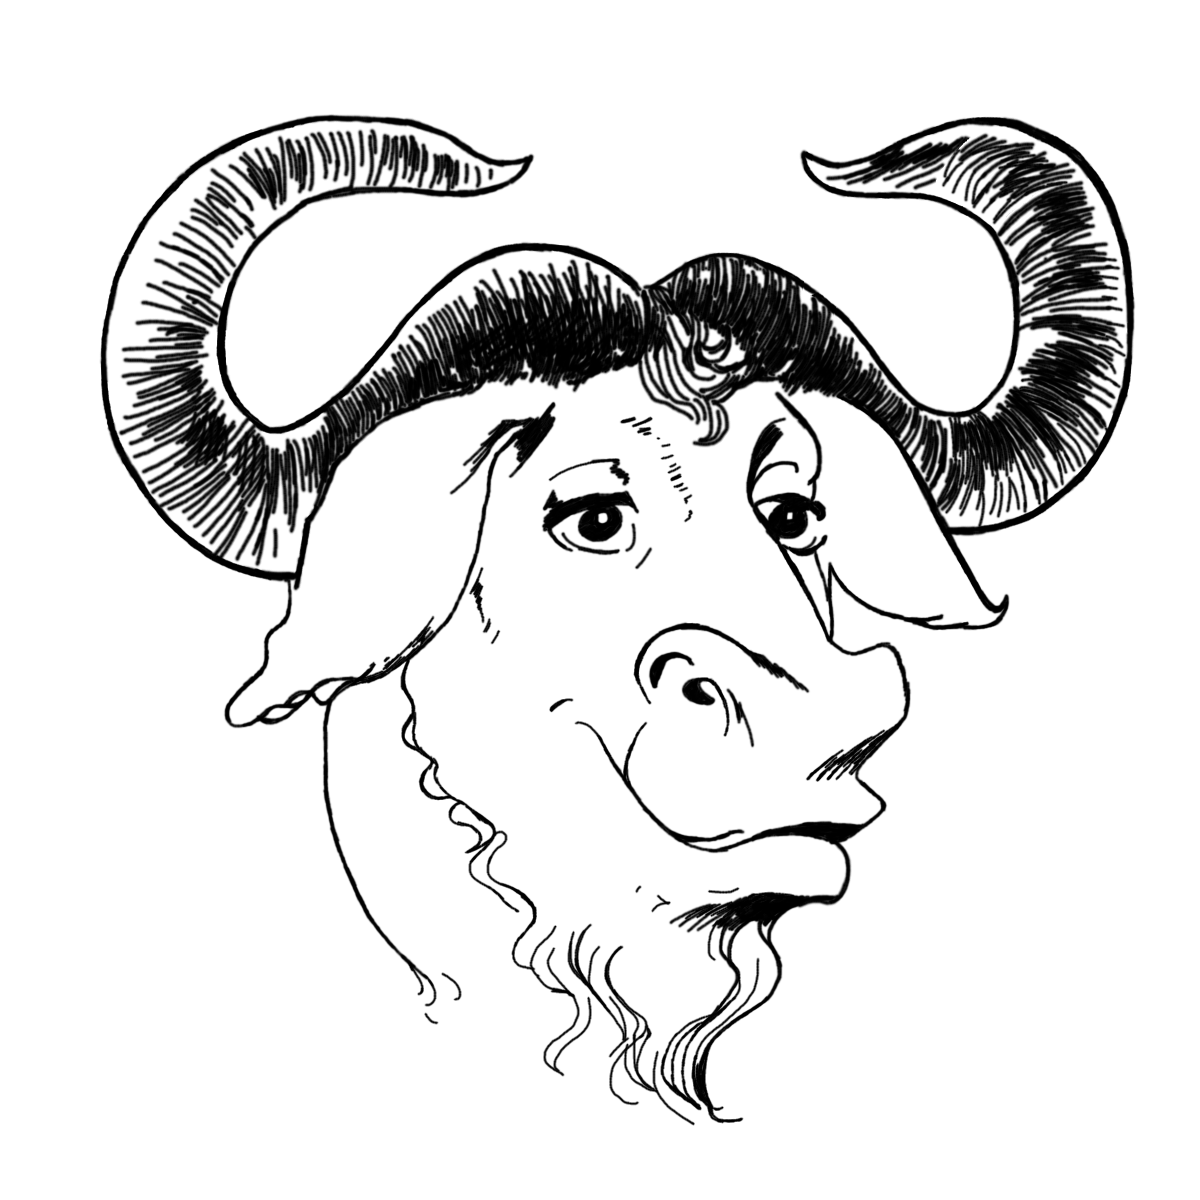 Drawing technology bad. How to use gnu